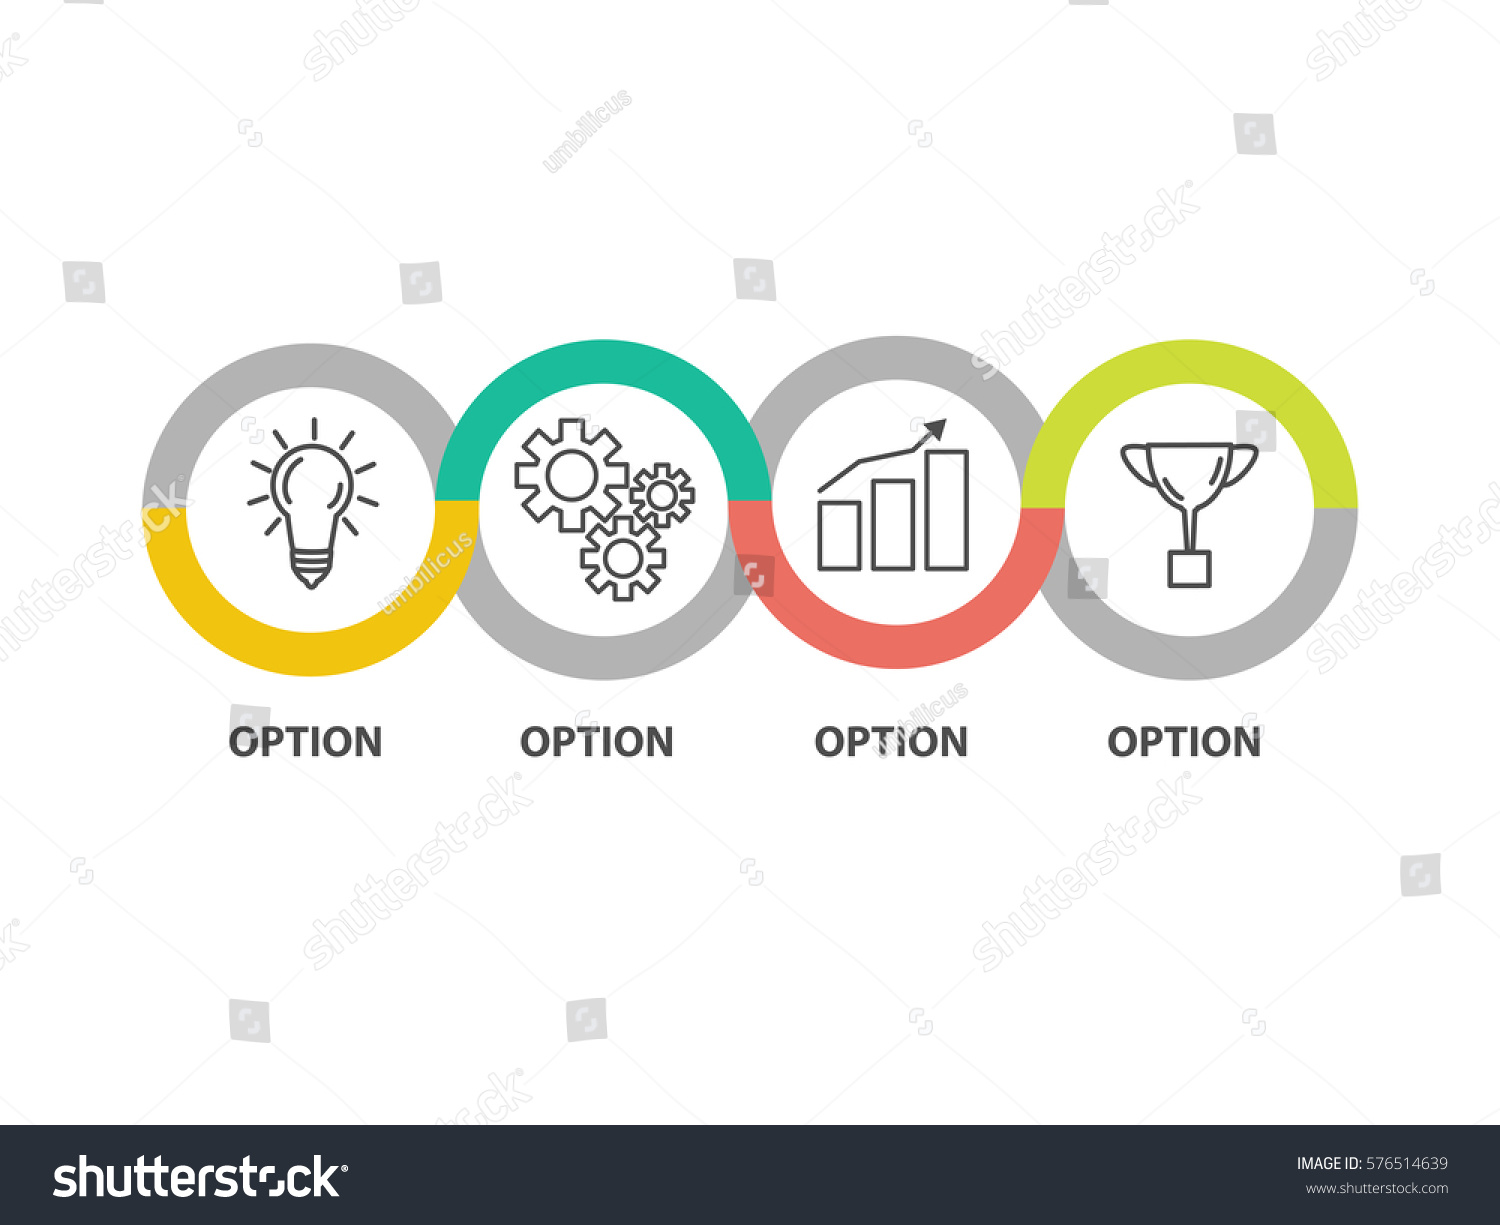 Infographic Template Business Concept Diagram Idea Stock Vector ...